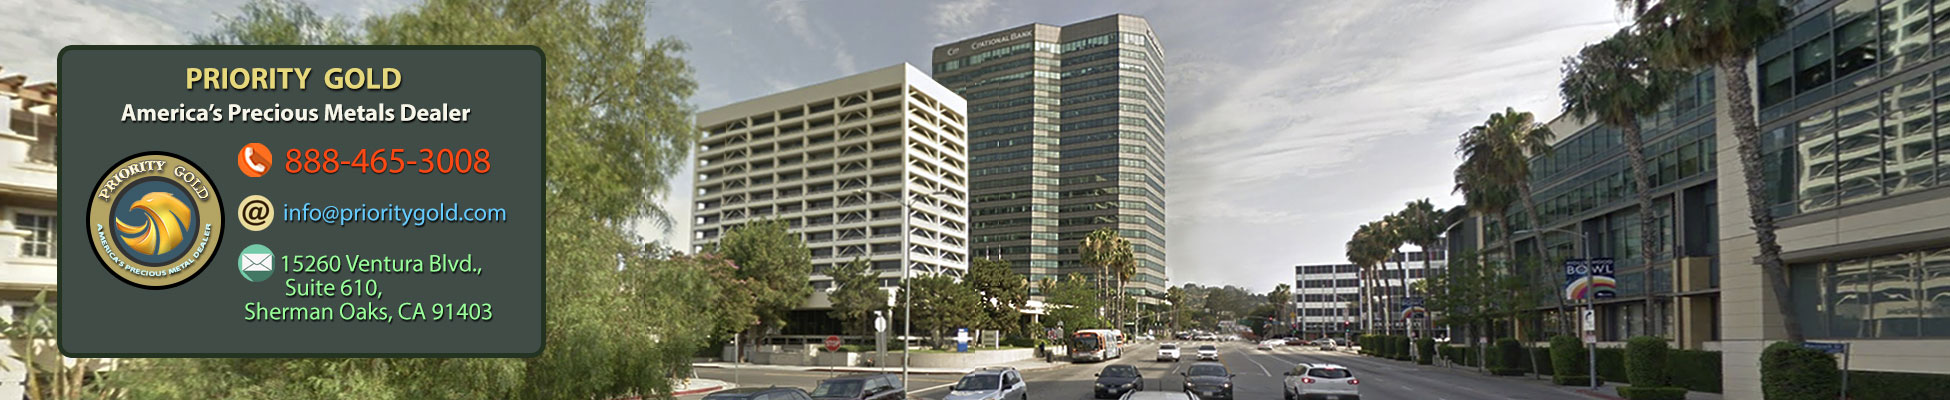 Priority Gold Head office in Los Angeles, California